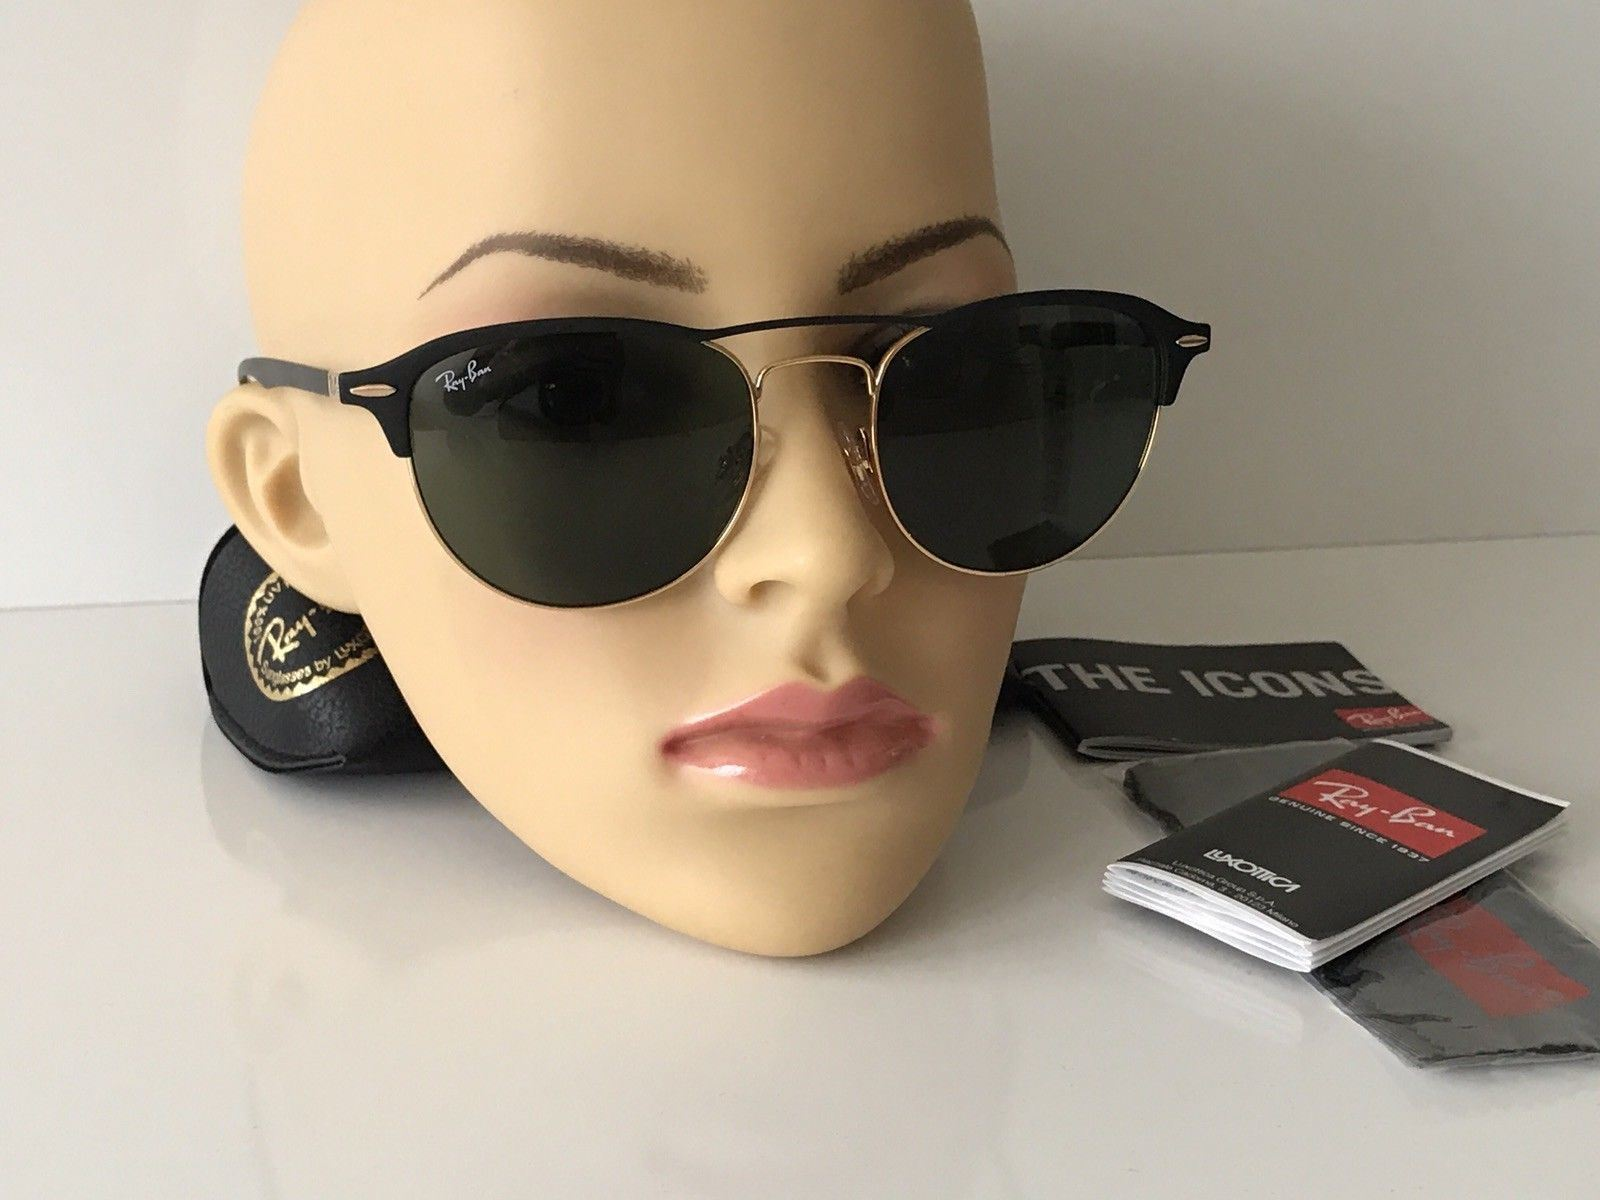 936fd20858c NWT Ray Ban Sunglasses RB 3596 9076 71 Gold Top on Matte Black Frame Green